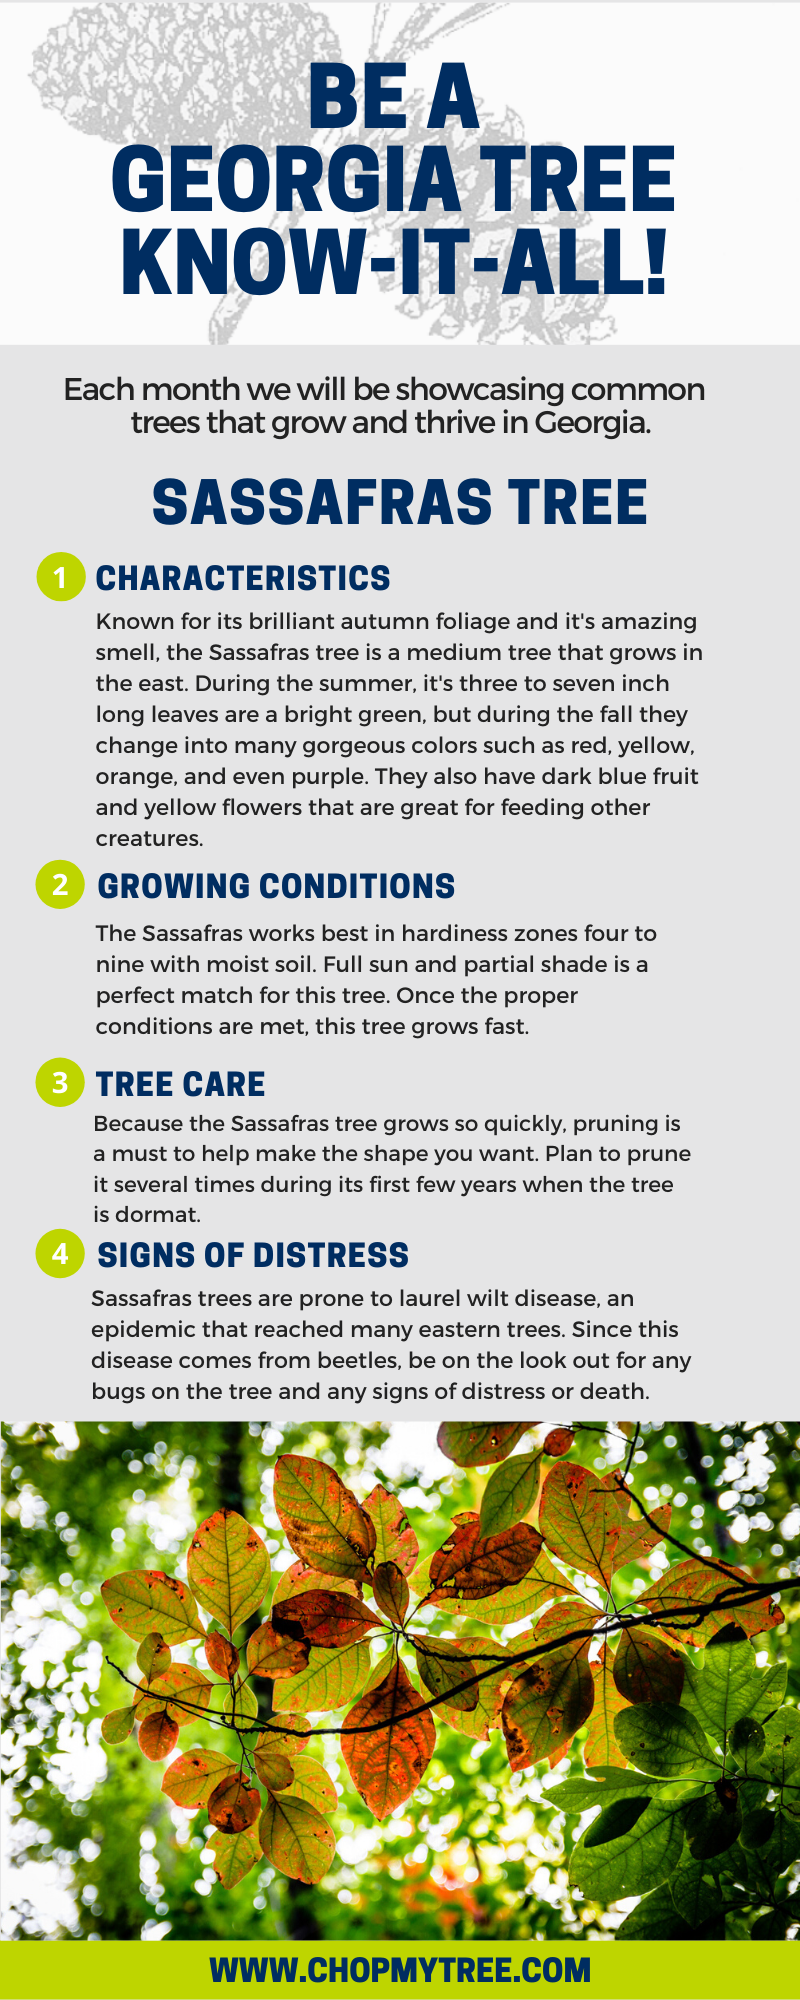 Sassafras Tree of the Month infographic.